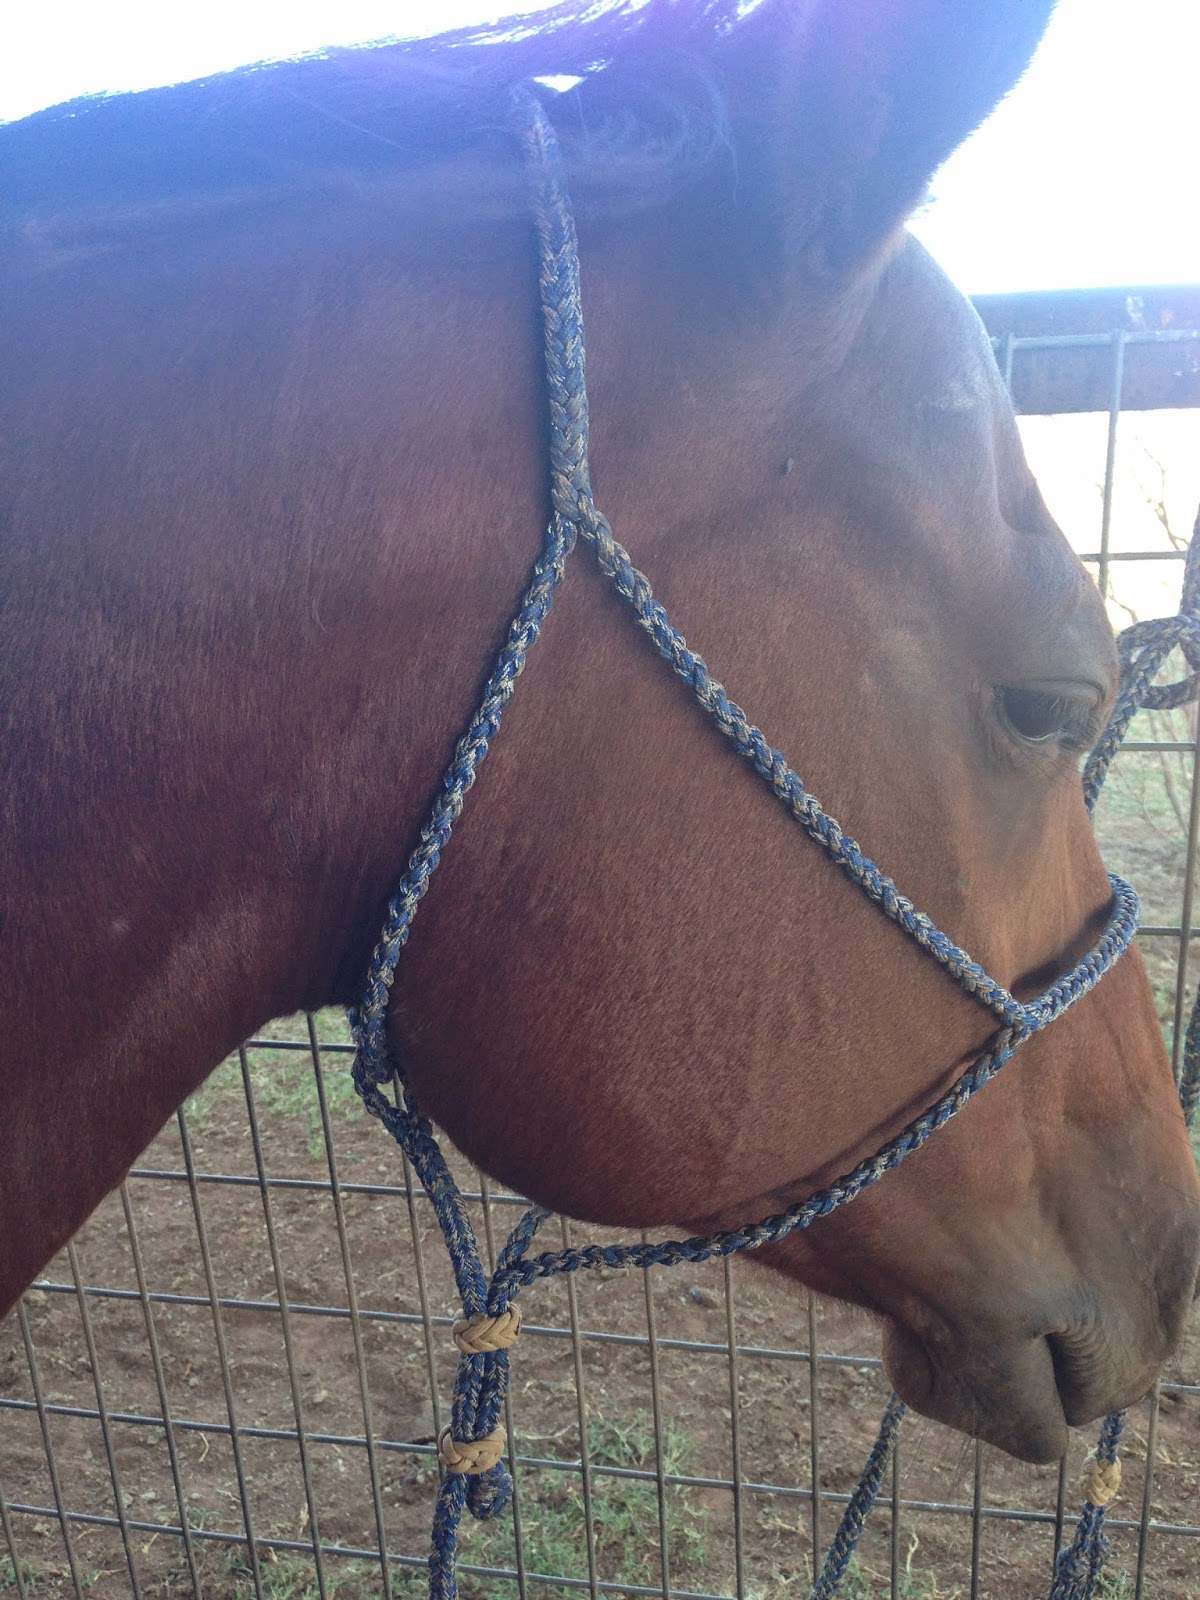 The Paracord Cowboy Halter For Horse Part 2